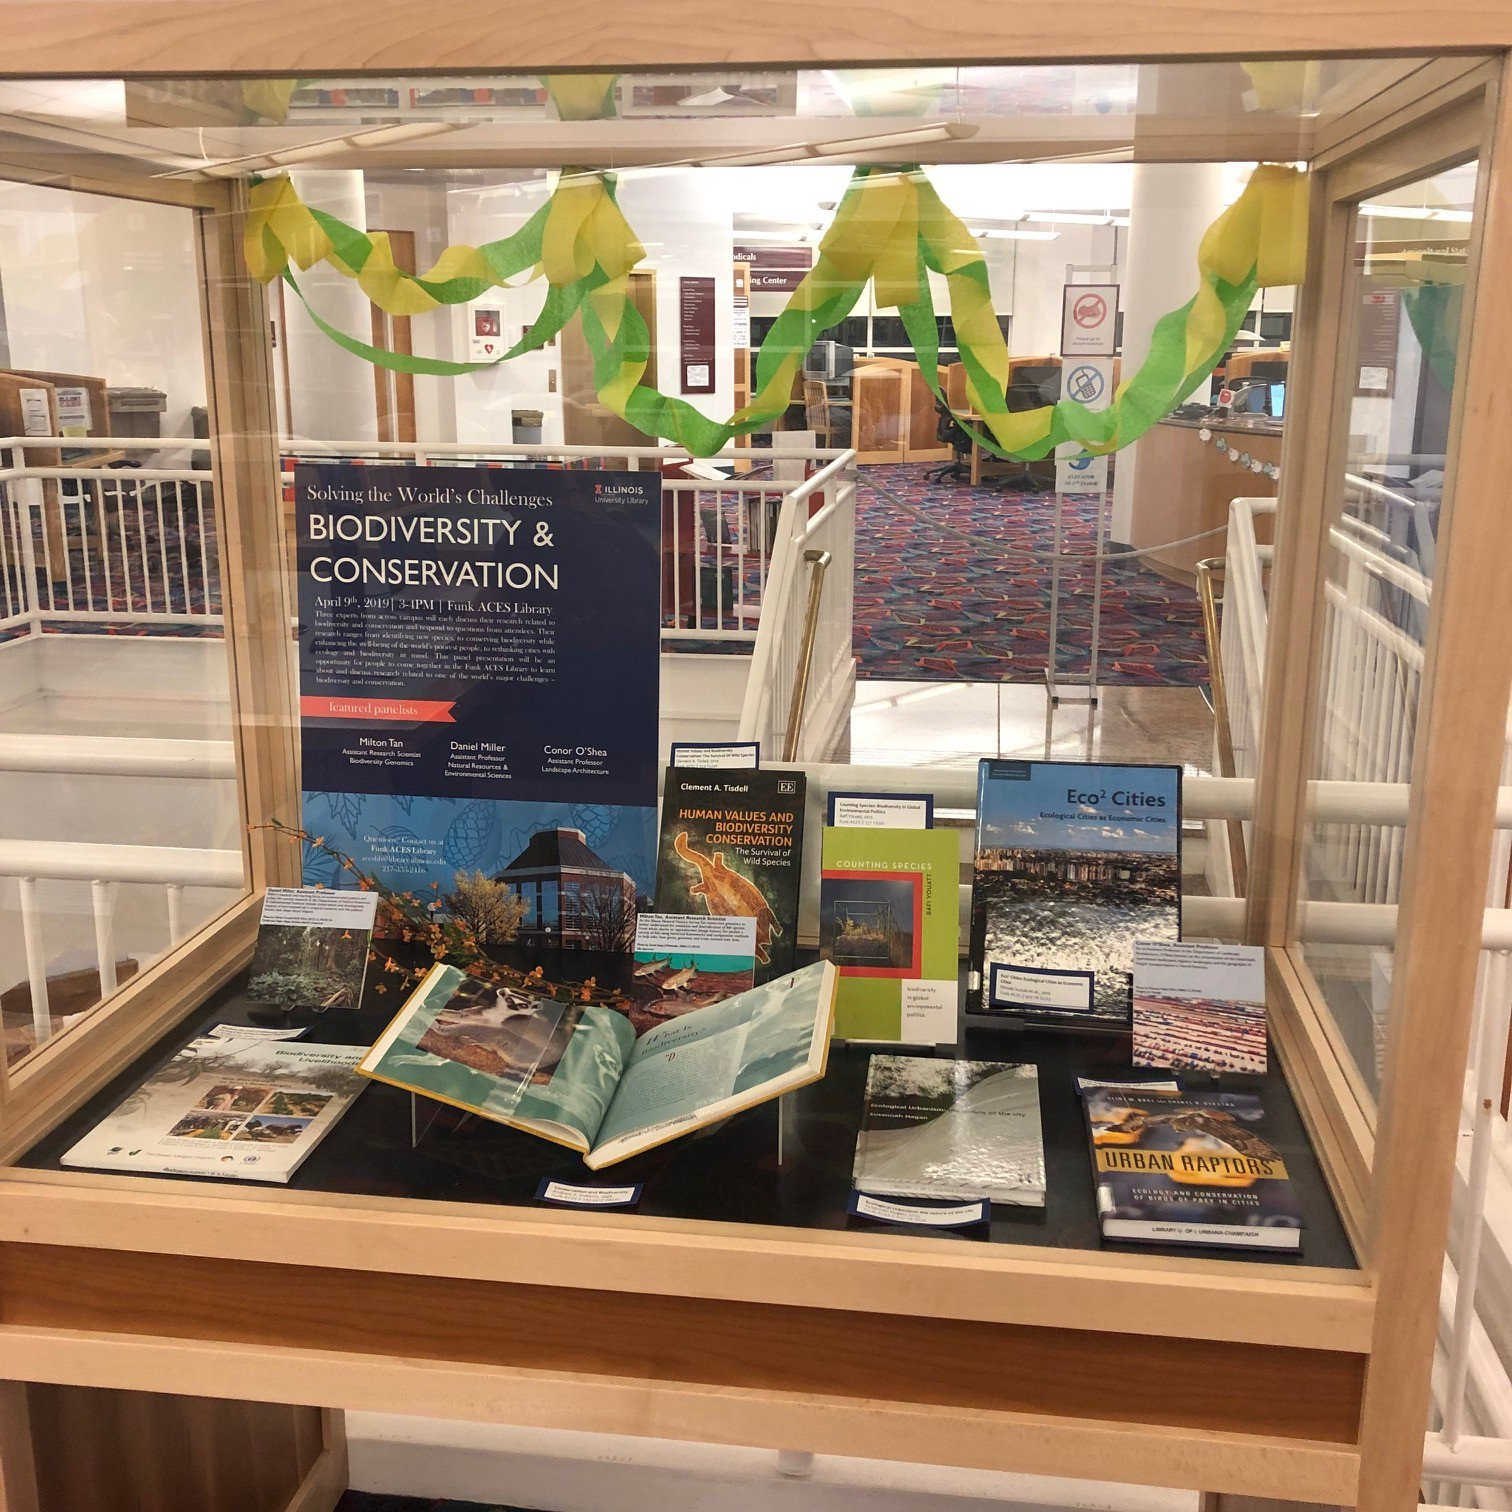 photograph of book display on biodiversity and conservation in Funk Library